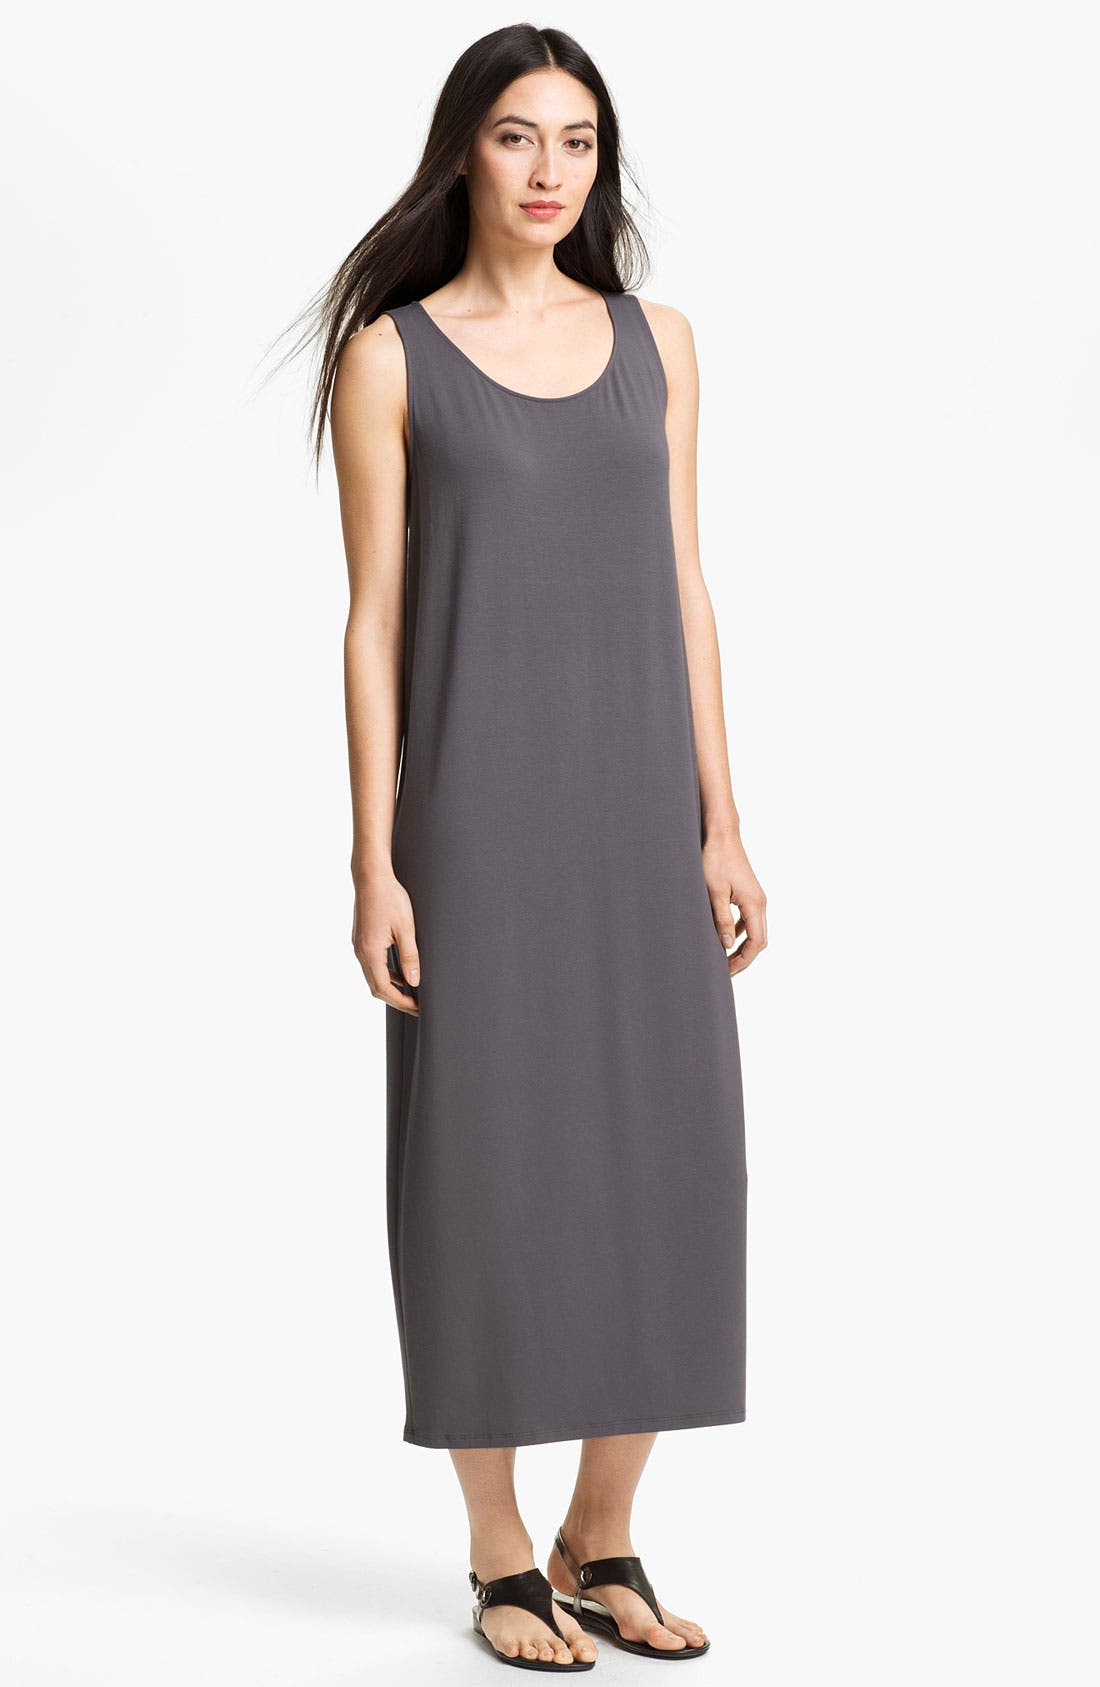 Main Image - Eileen Fisher Scoop Neck Sleeveless Dress